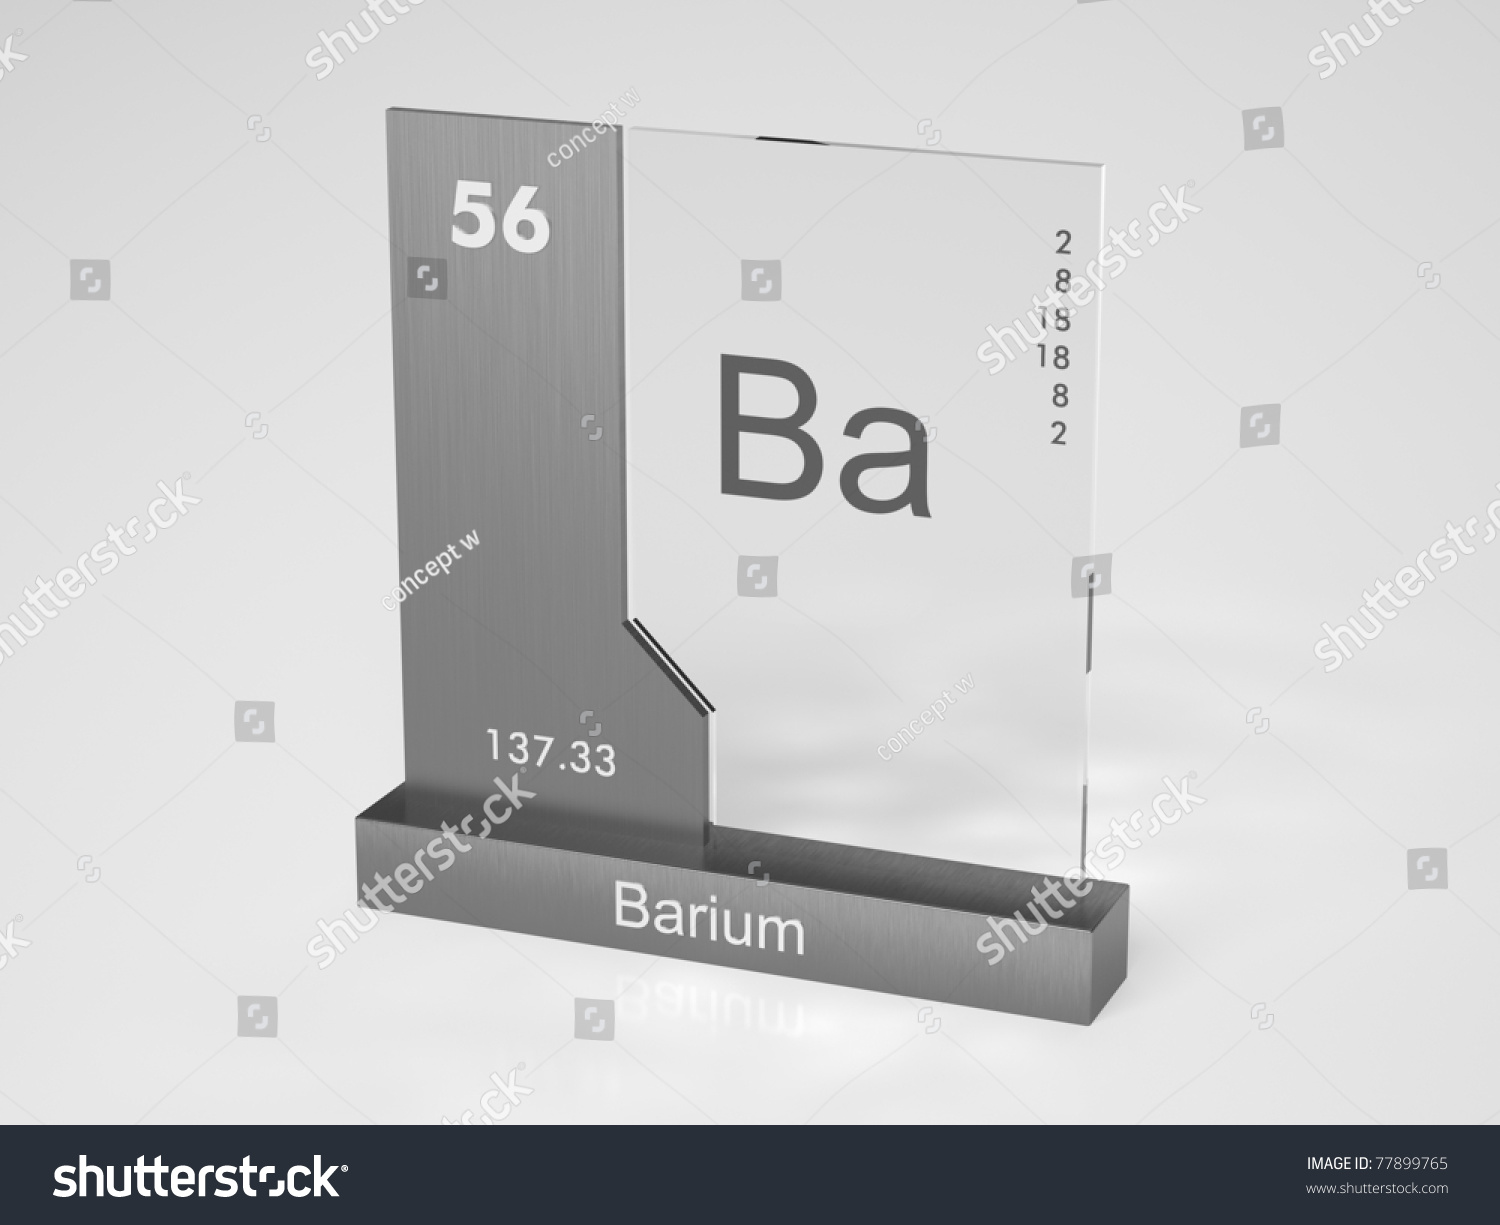 Barium symbol ba chemical element periodic stock illustration barium symbol ba chemical element of the periodic table gamestrikefo Image collections